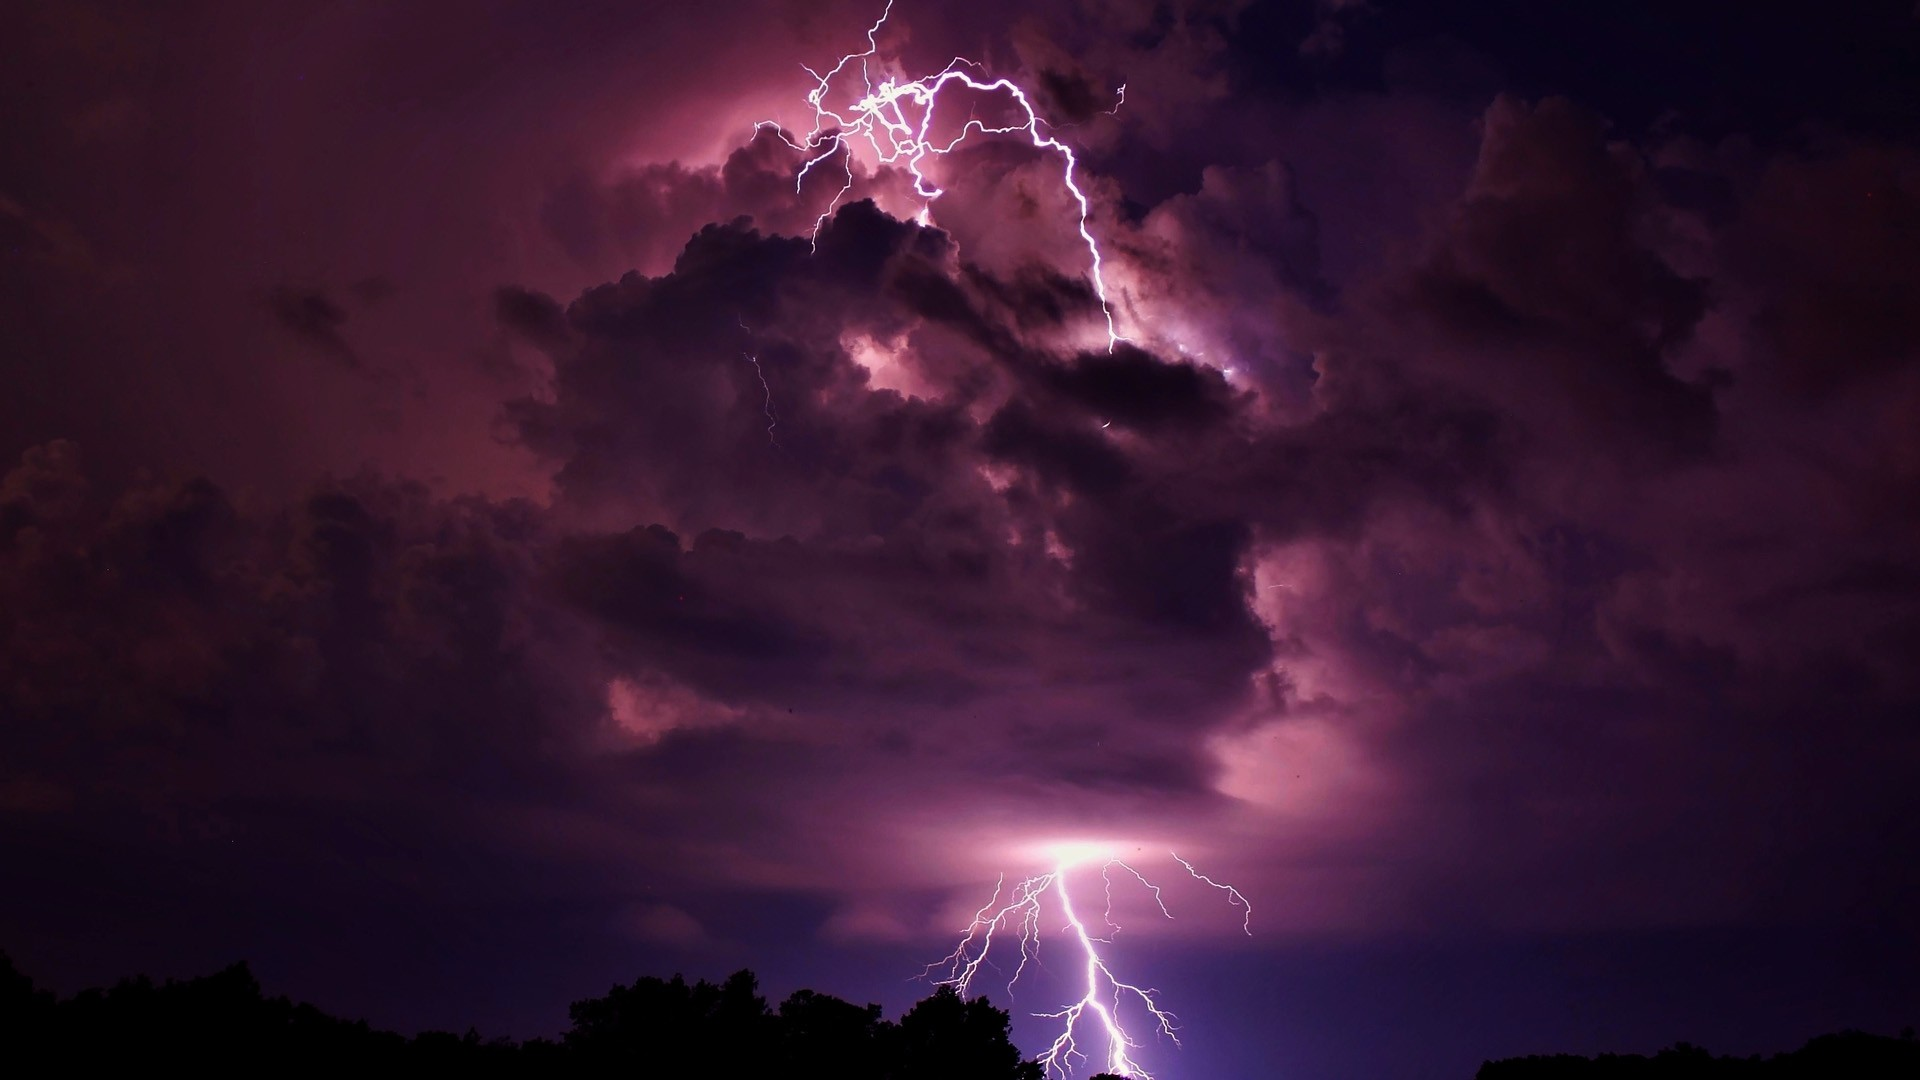 Lightning Storm Clouds wallpaper.